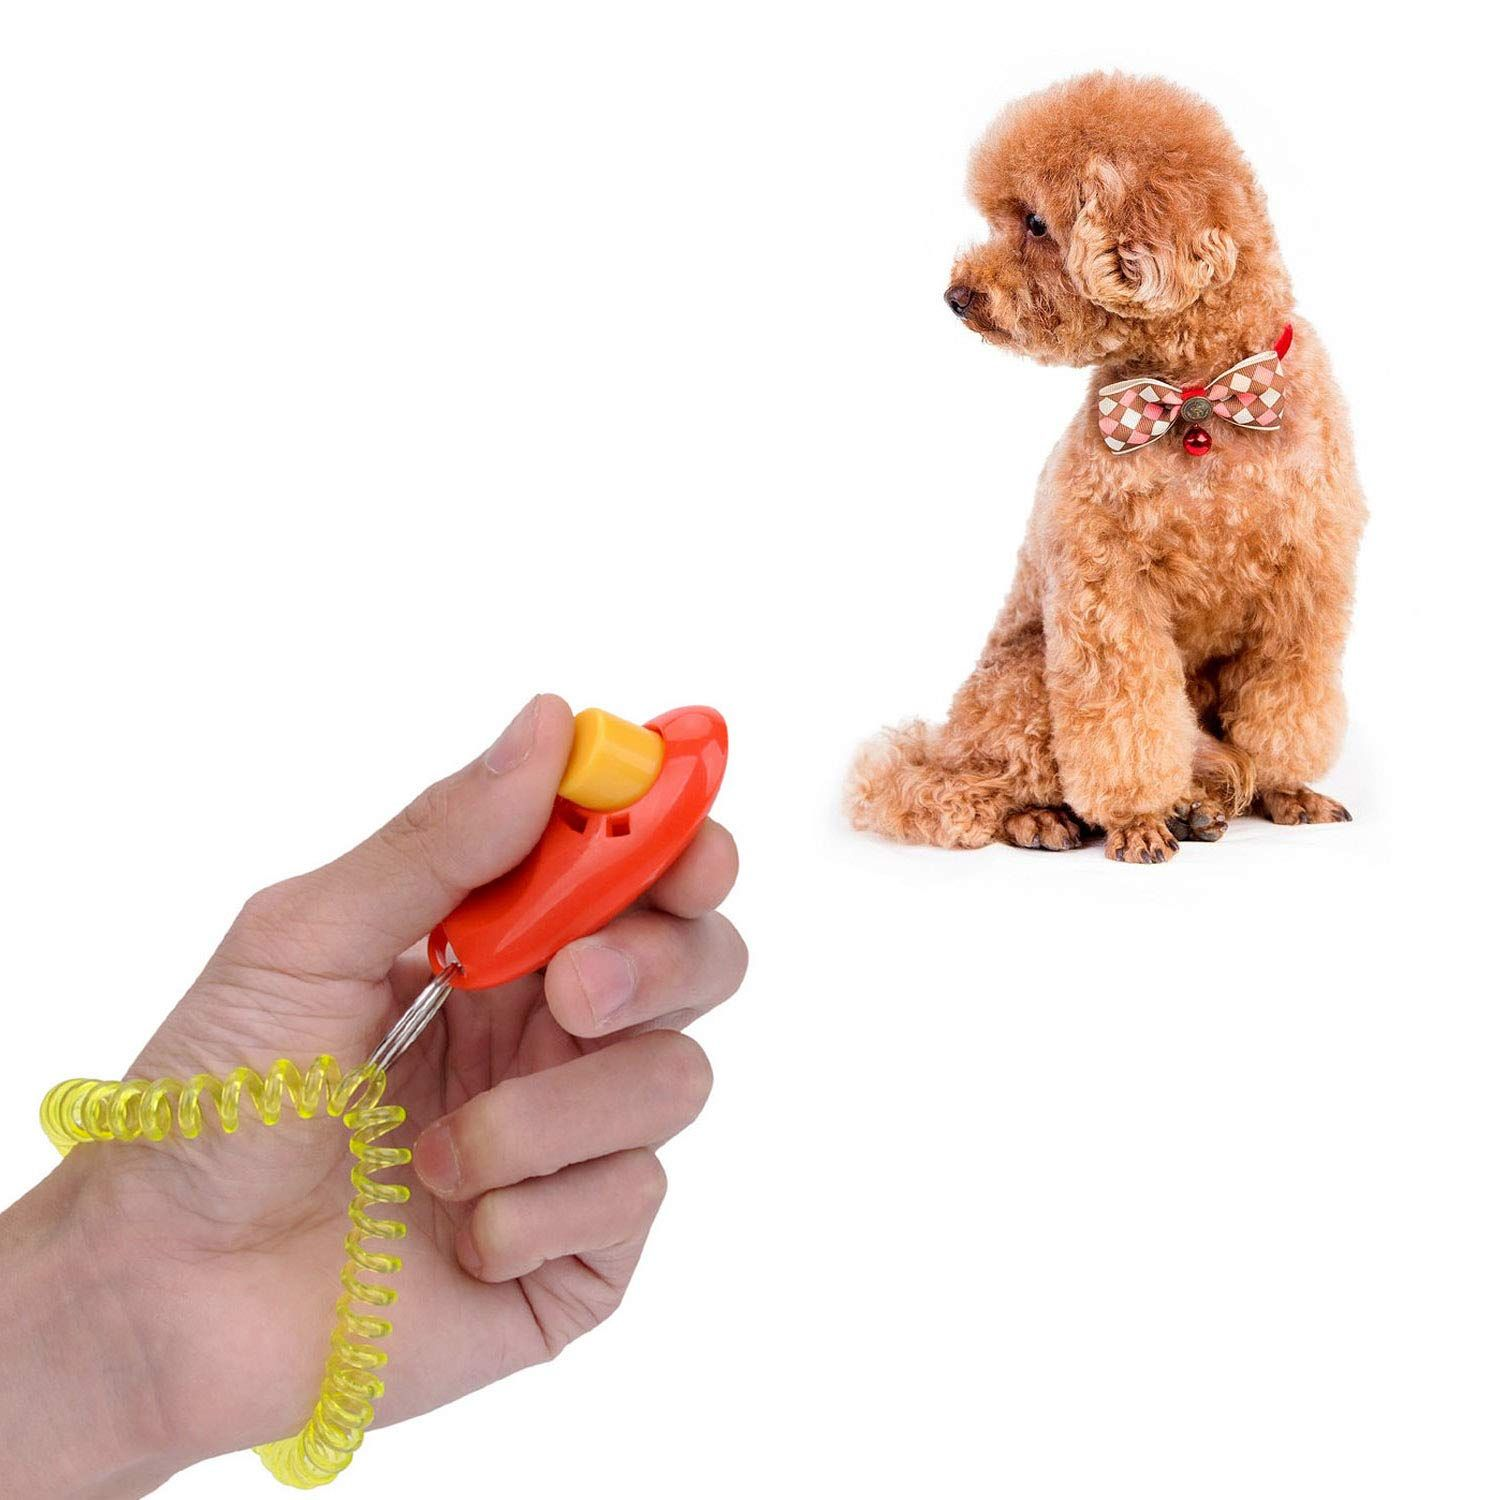 Dog Behavior Submissive And Clicker Training Your Dog To Walk To